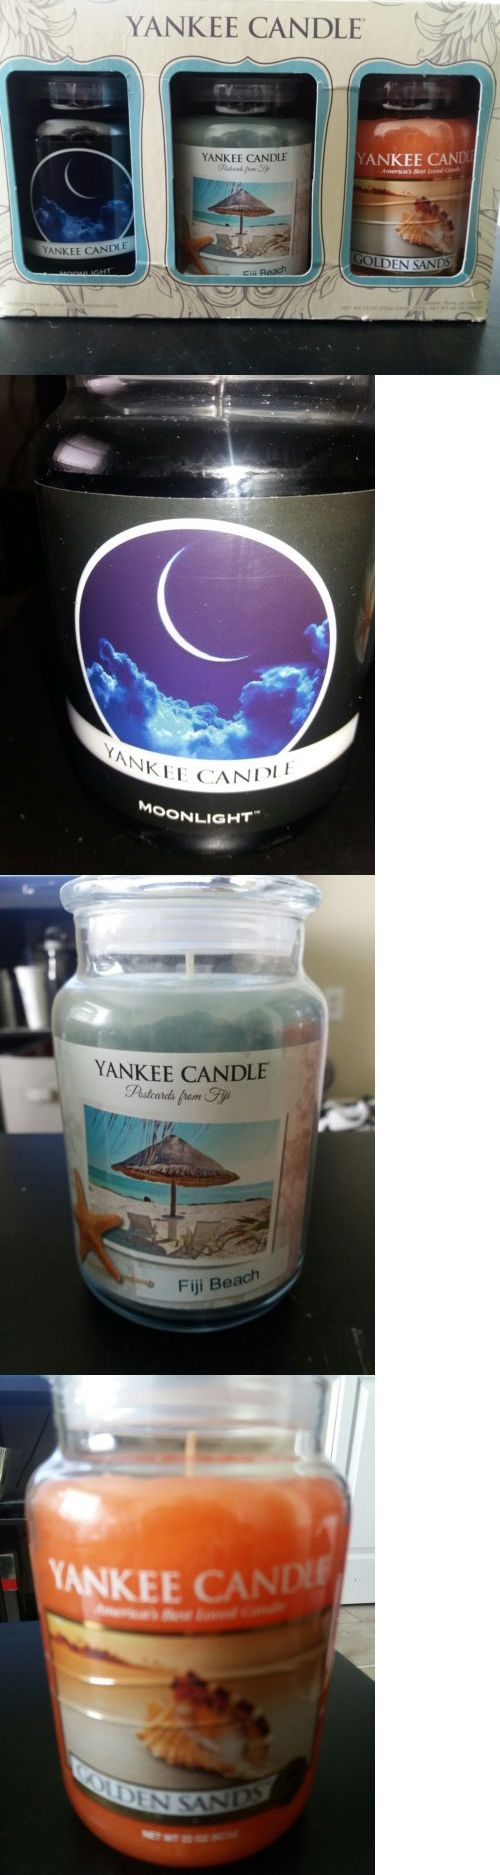 Candles 46782: Yankee Candle 3 Candle Set -> BUY IT NOW ONLY: $50 on eBay!